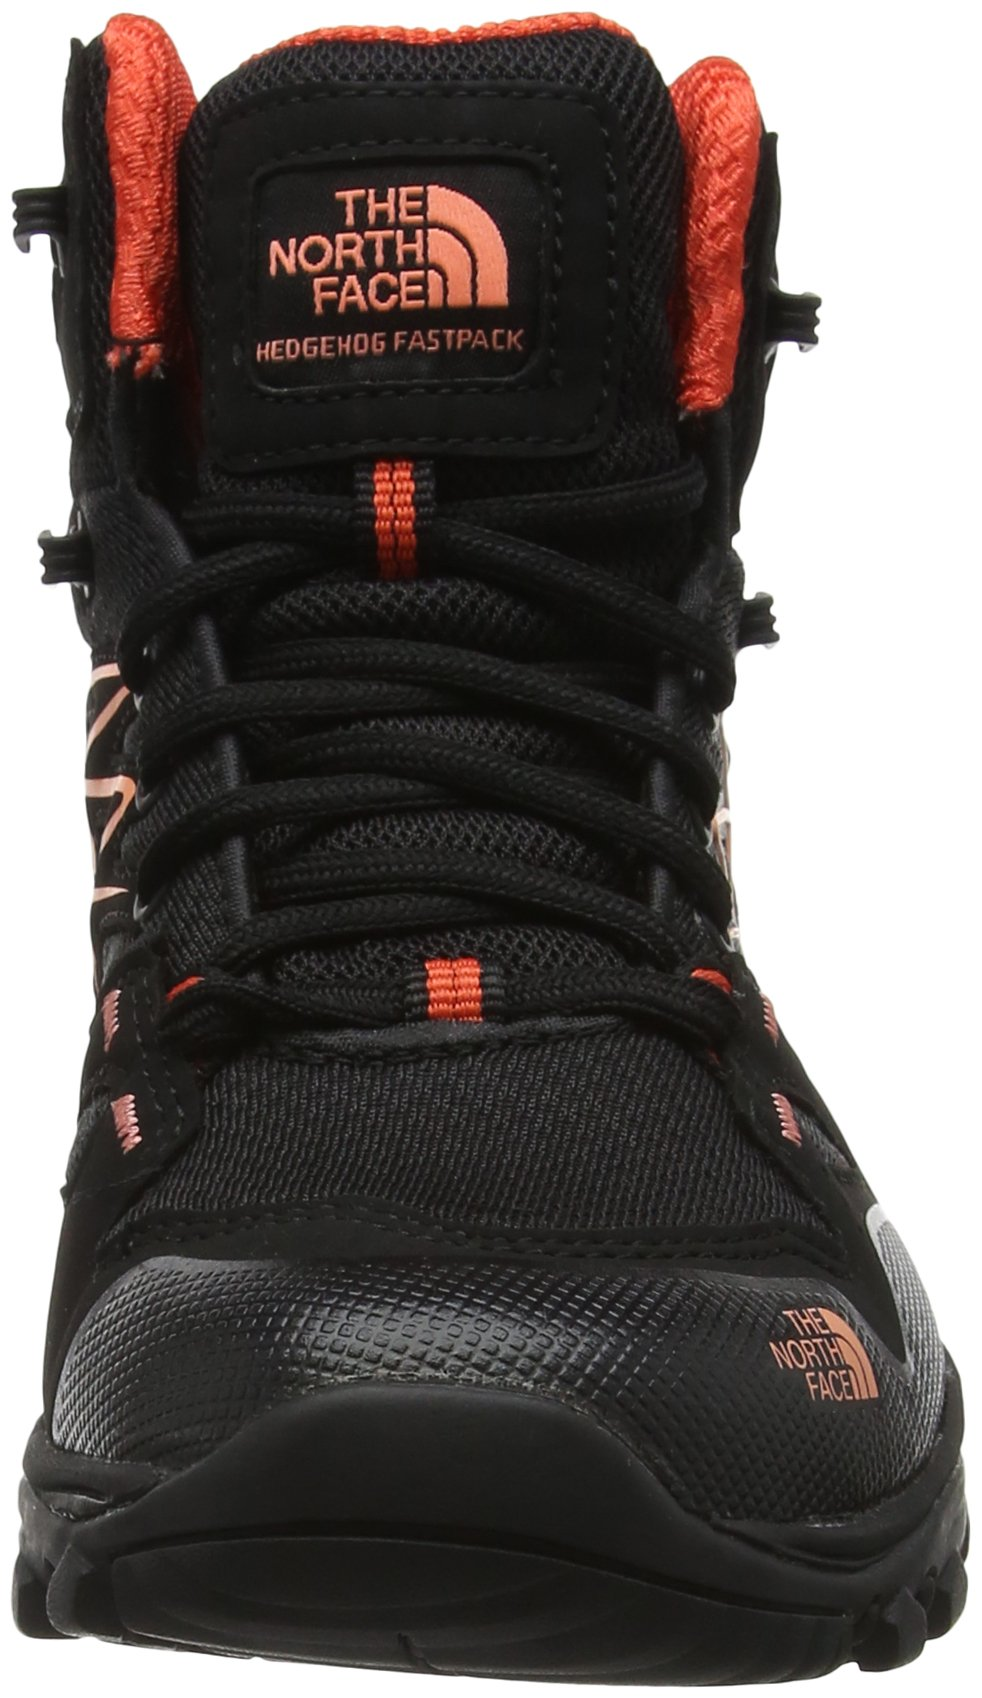 71Zap0kfNTL - THE NORTH FACE Women's Hedgehog Fastpack Mid GTX High Rise Hiking Boots